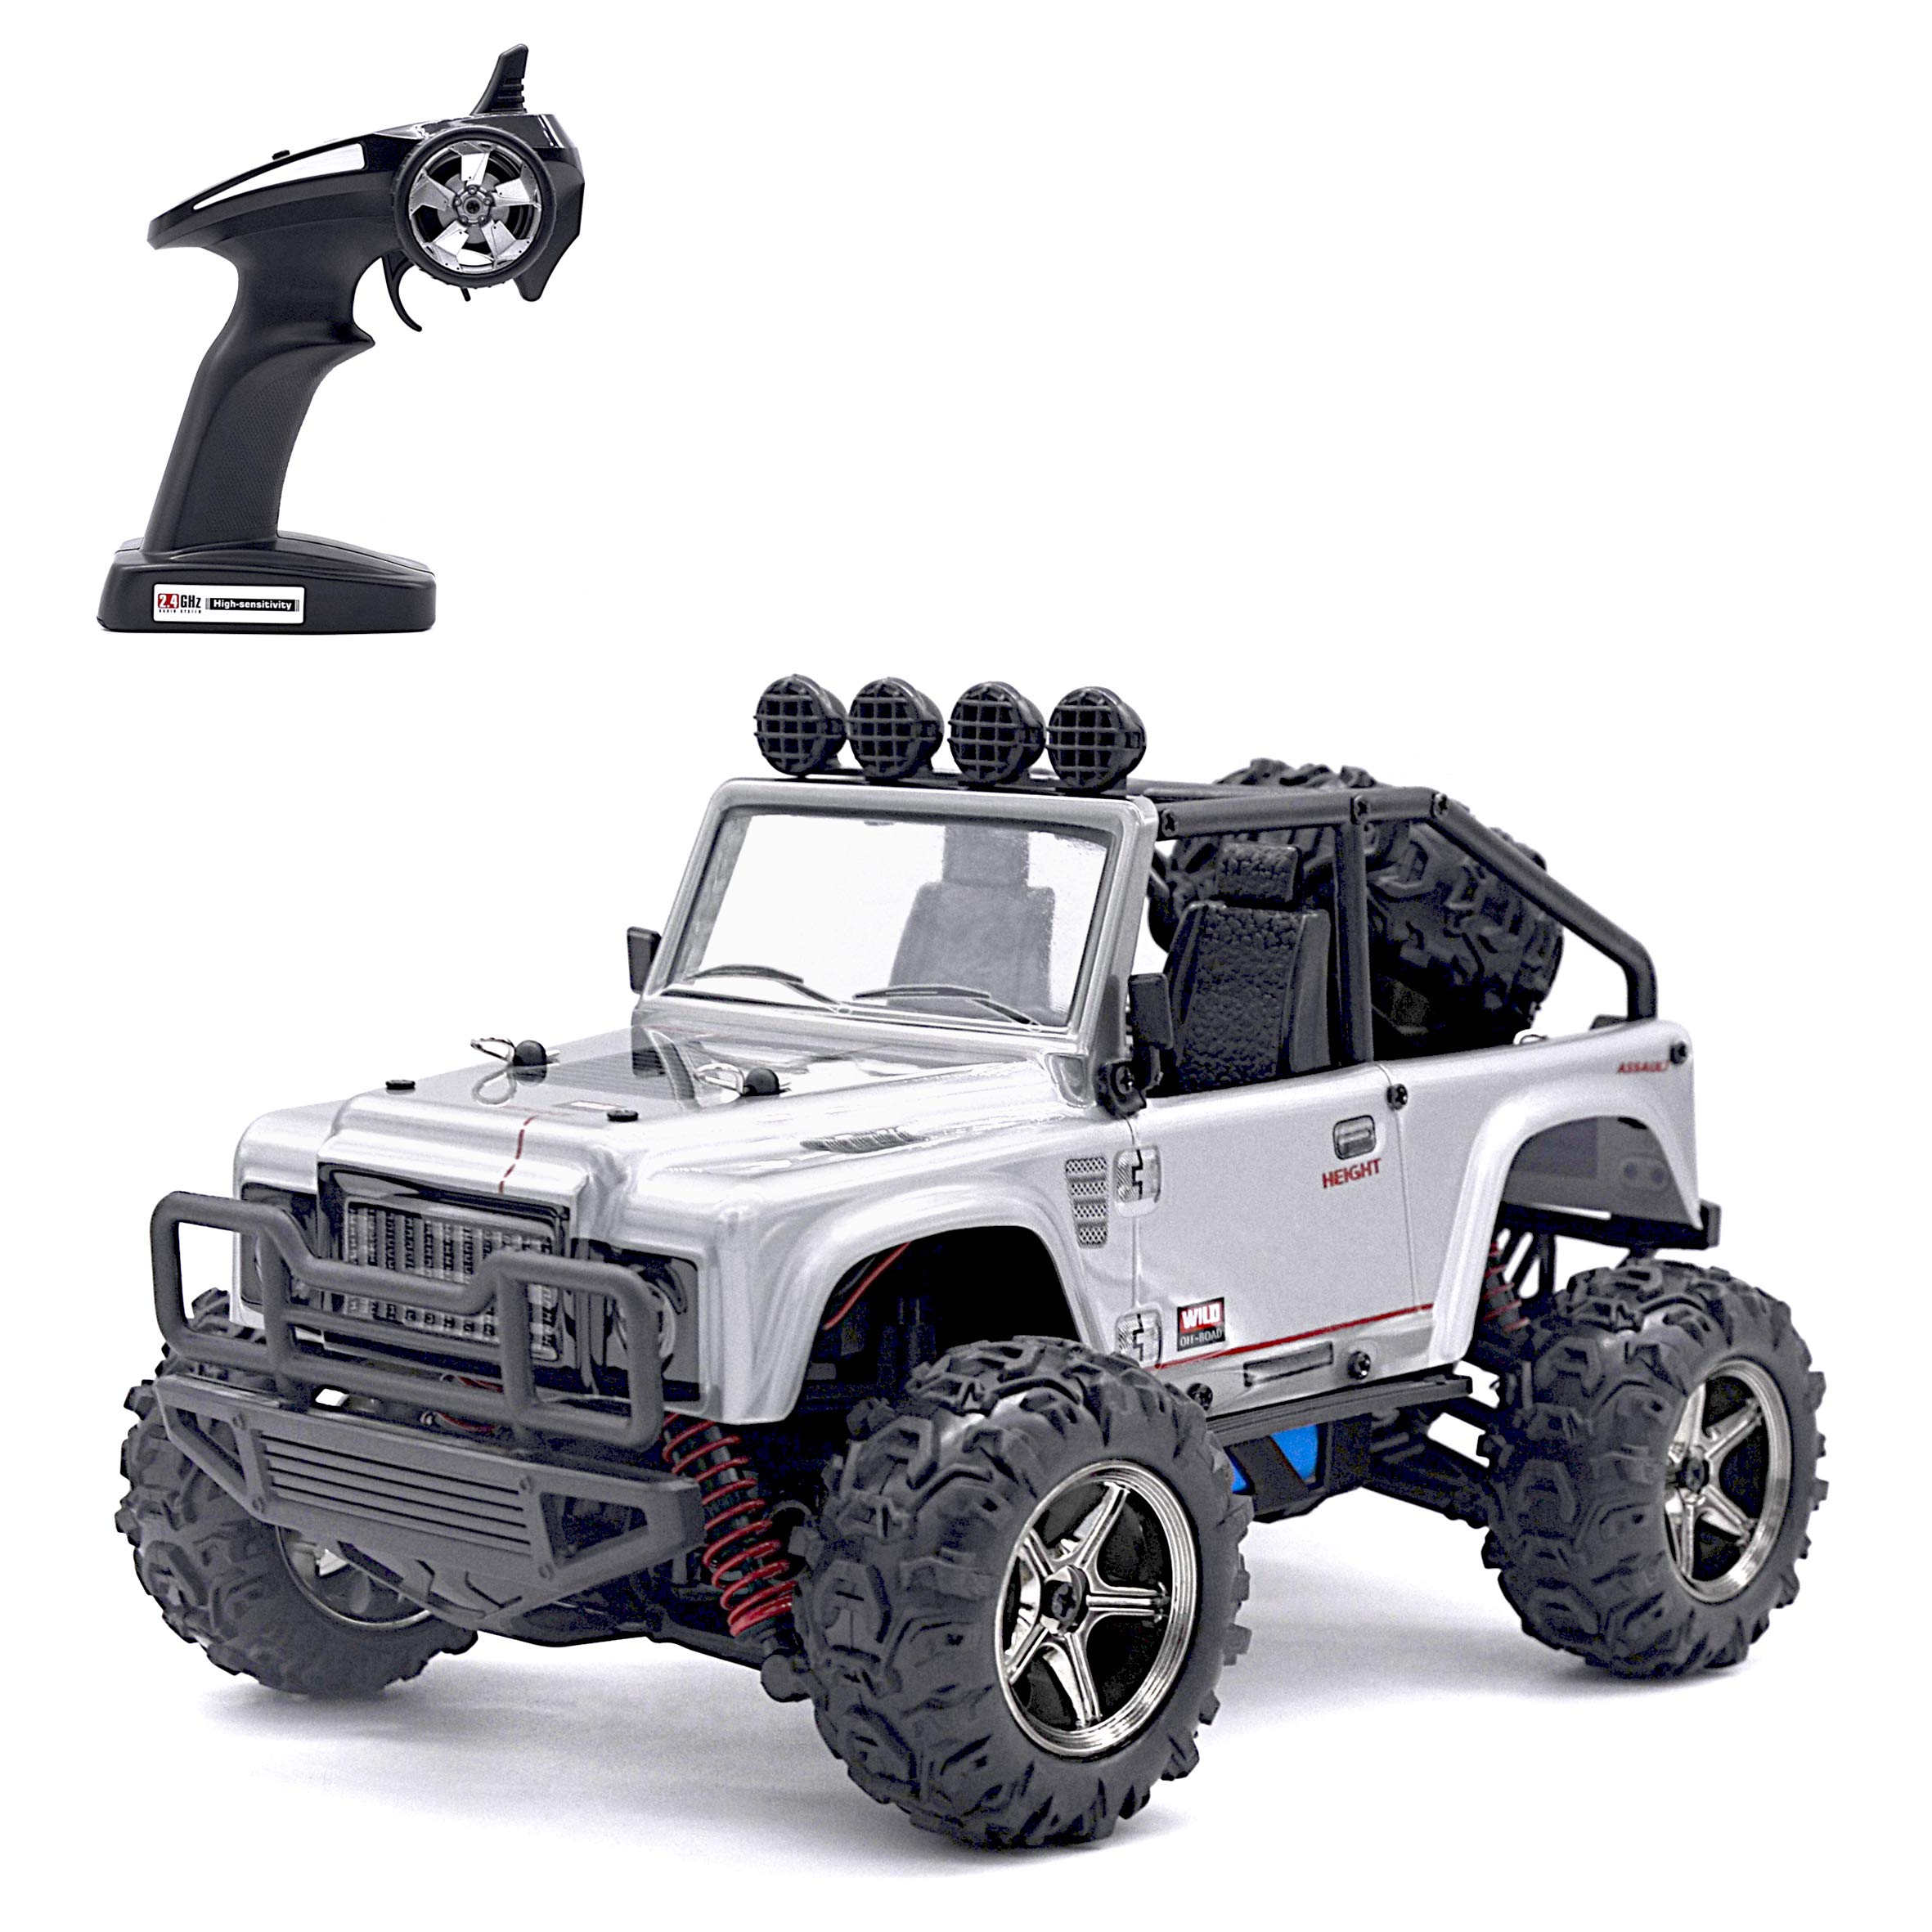 Keliwow 1/22 Scale 4WD Remote Control RC Jeep, 25Mph (40km/h) Monster High Speed Off-Road RC Truck, 2.4Ghz Electric Car with Independent Suspension and Lights Desert Road Buggy(Silver)